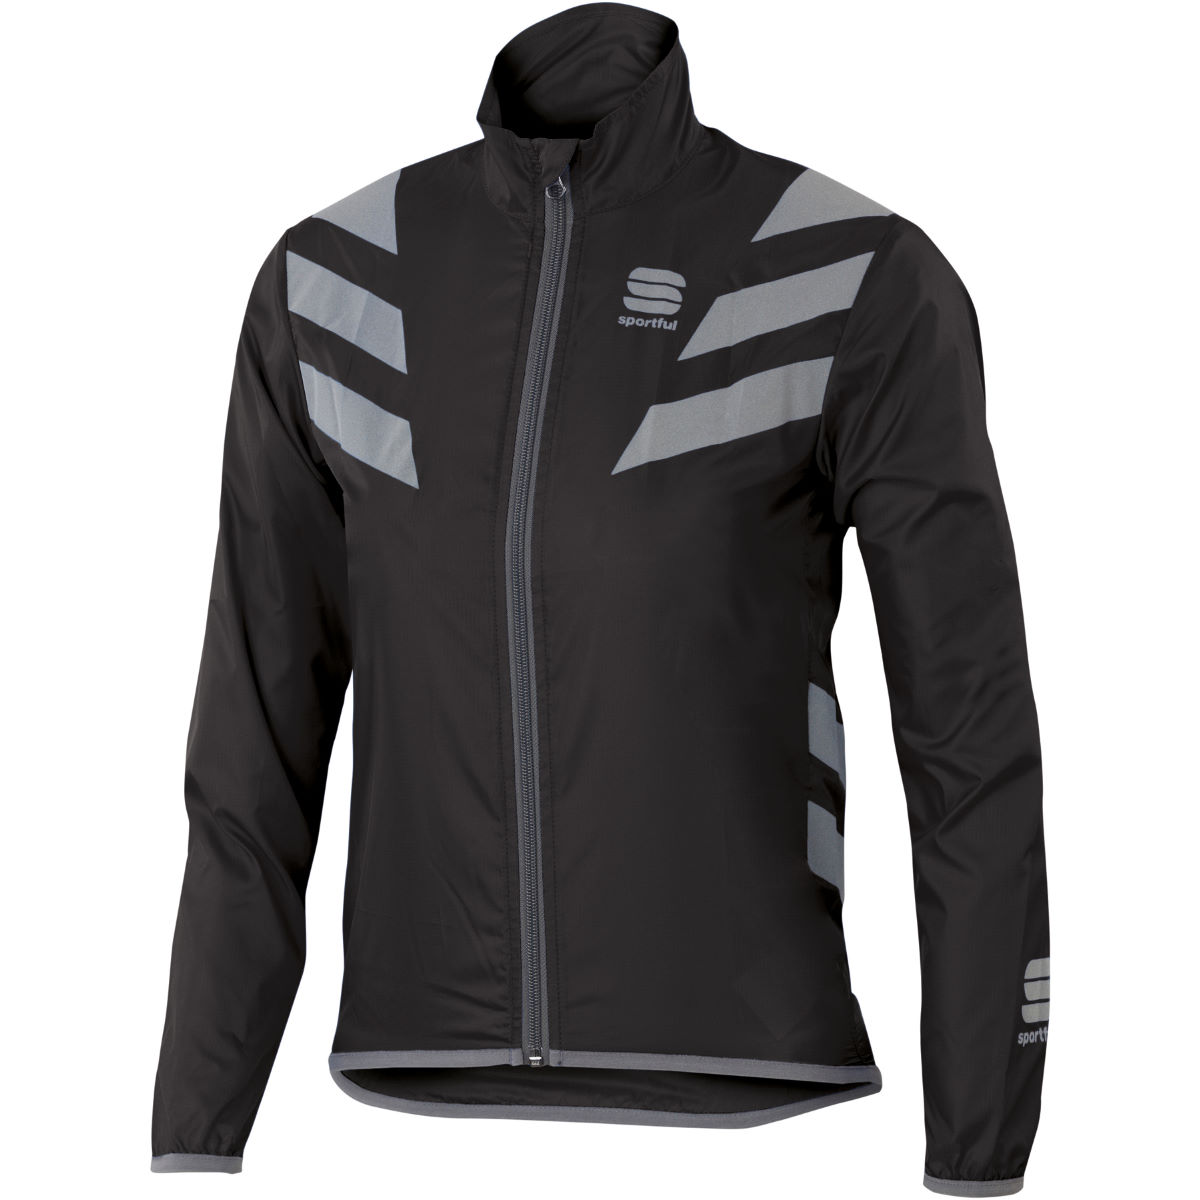 Veste Enfant Sportful Reflex - 14 years Noir Coupe-vents vélo